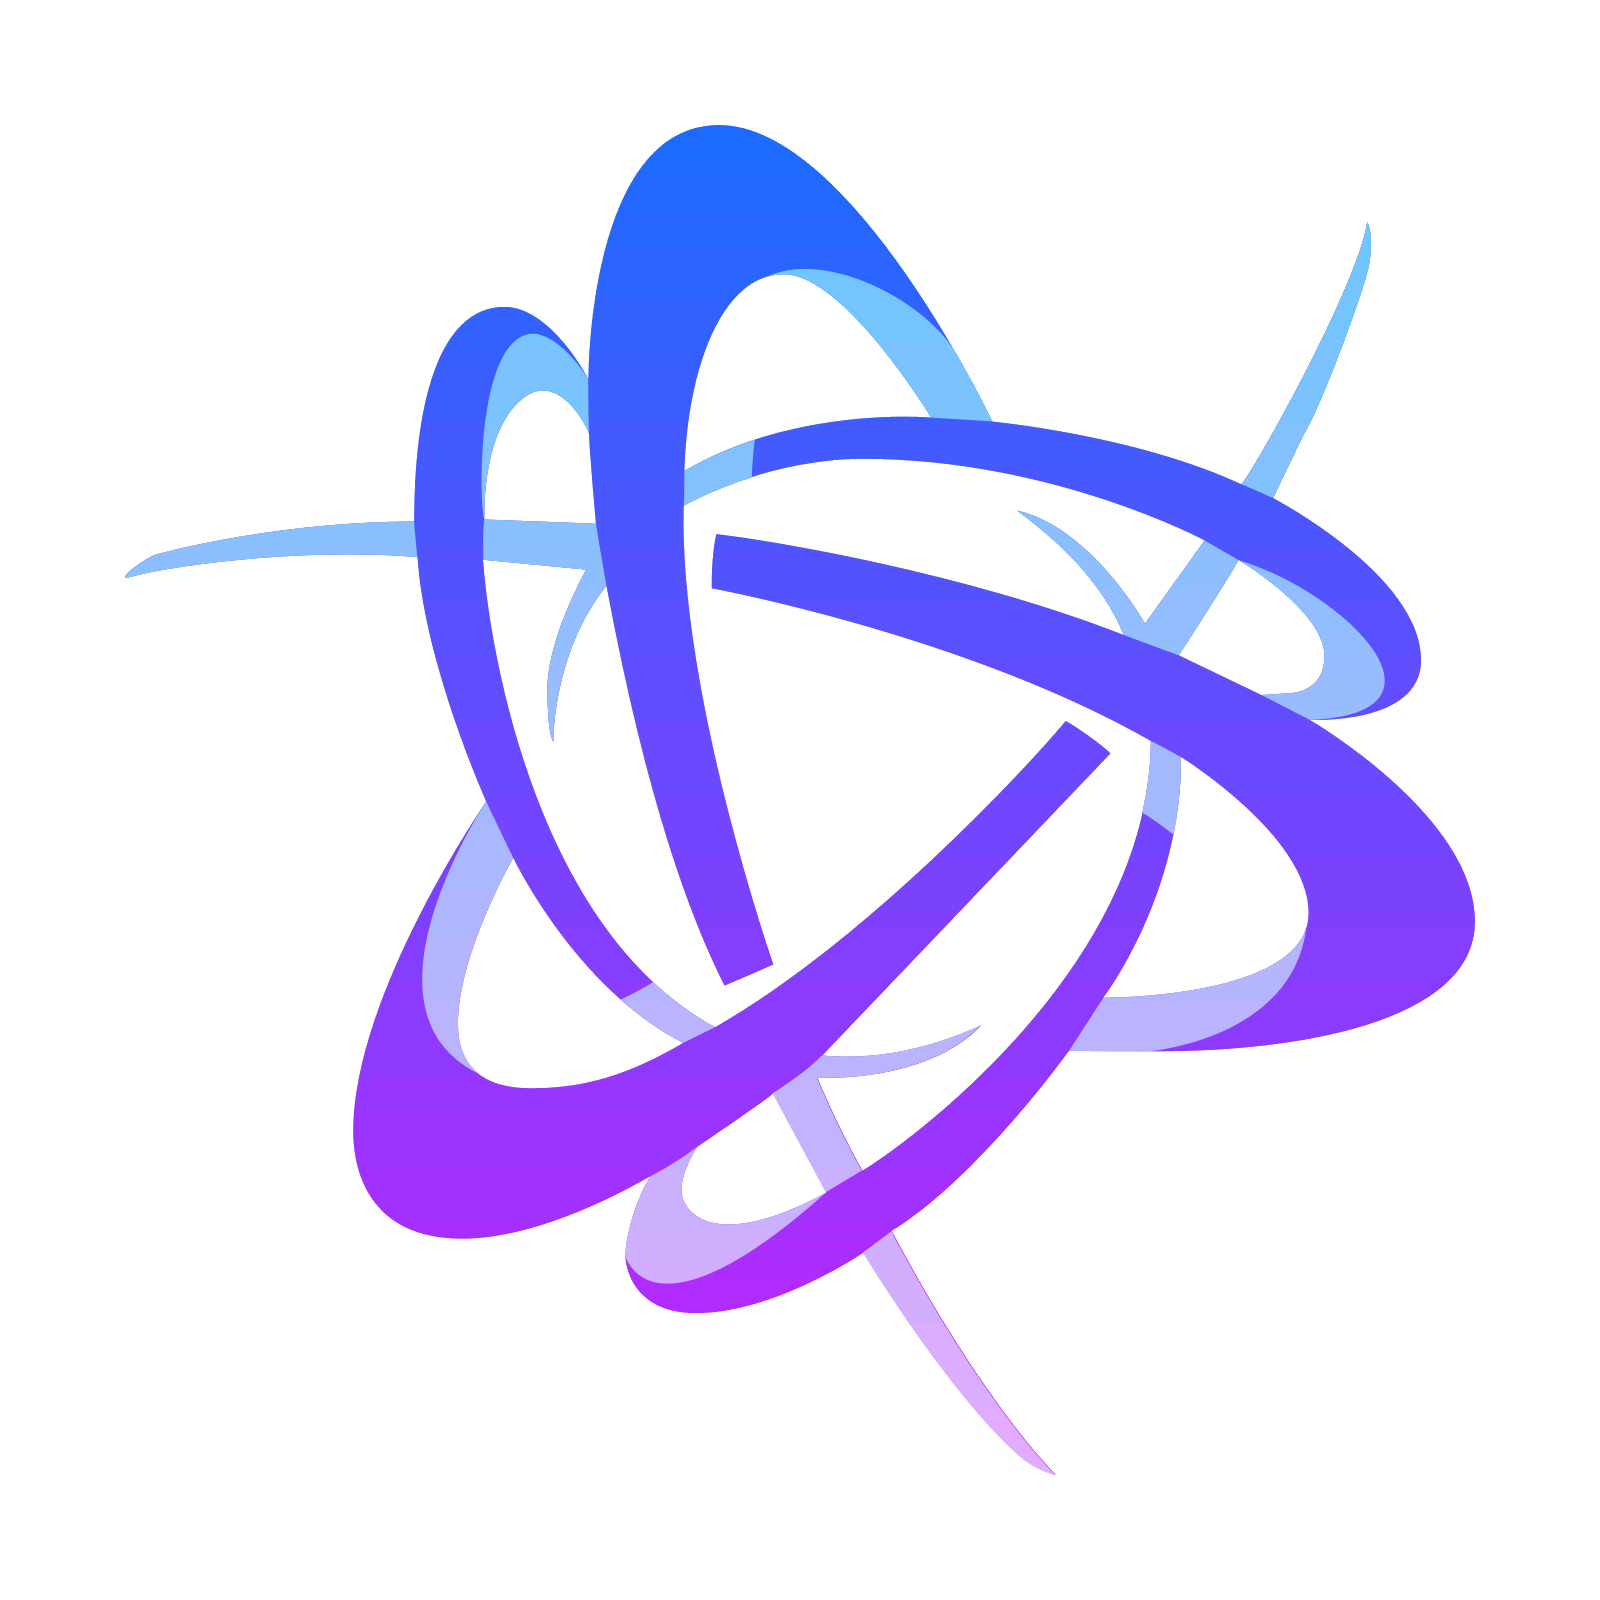 Battle net icon png. Free download and vector